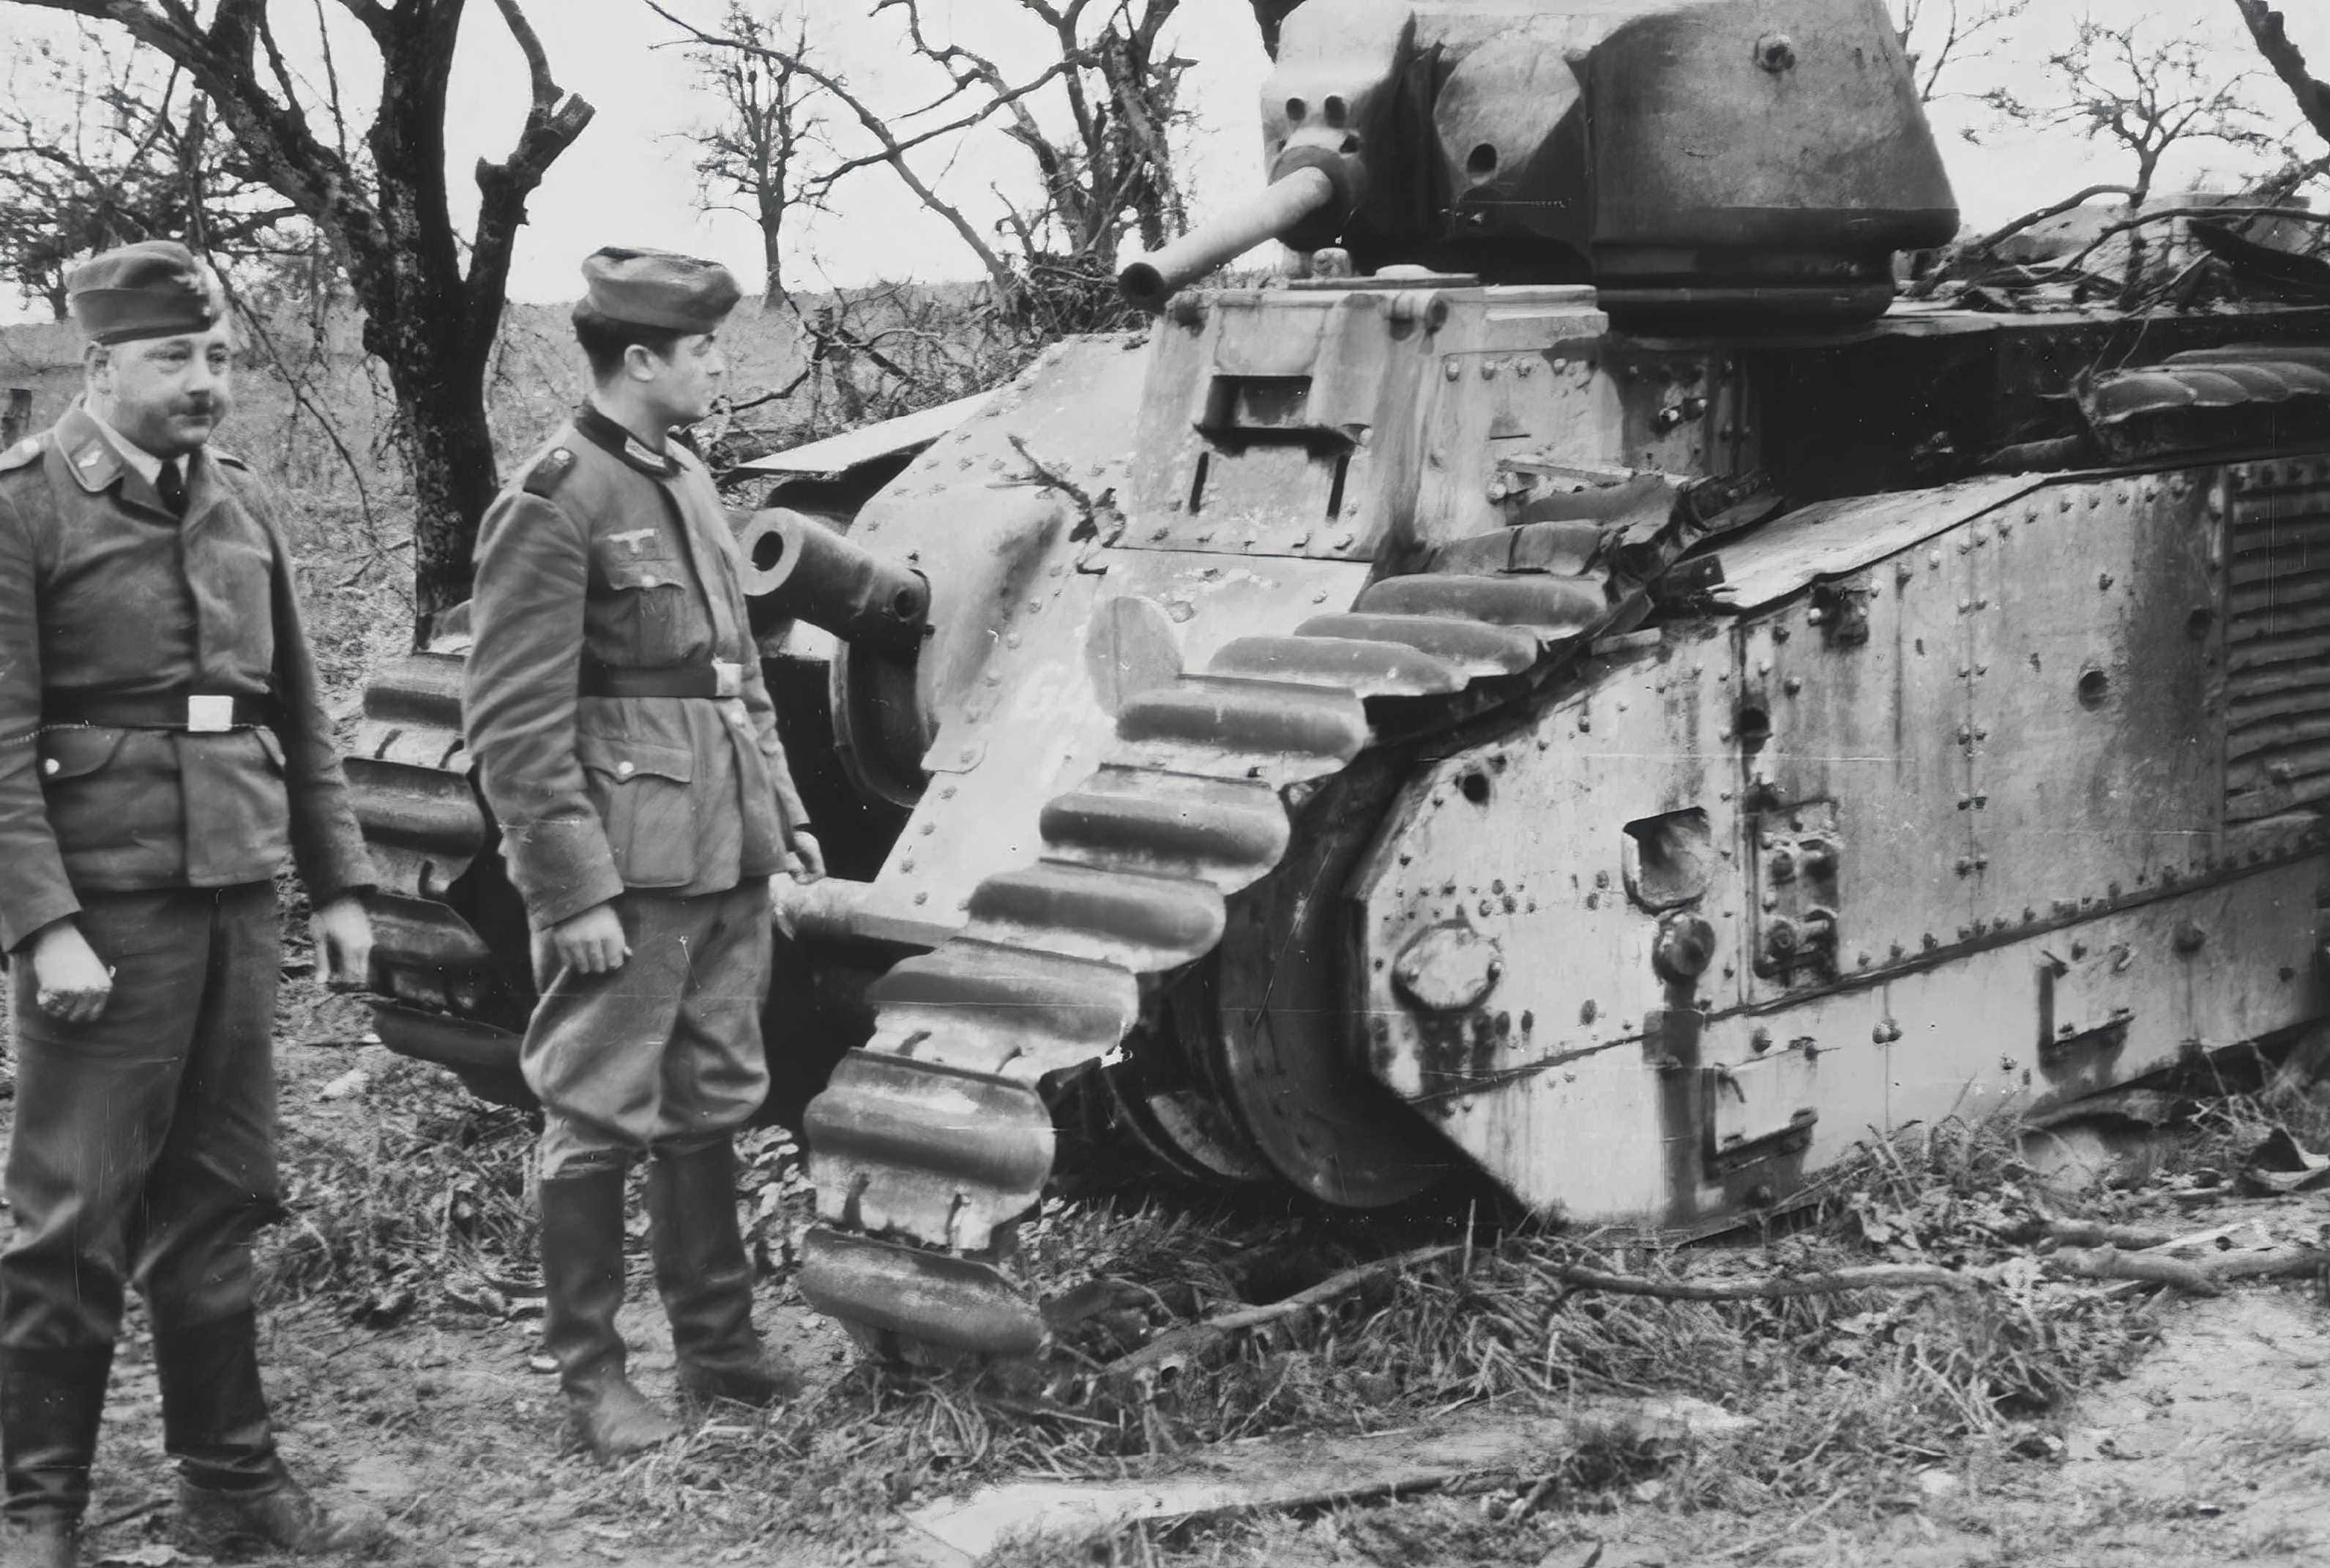 German Gen Christians inspecting a knocked out French Army Renault Char B1bis France 1940 NIOD2